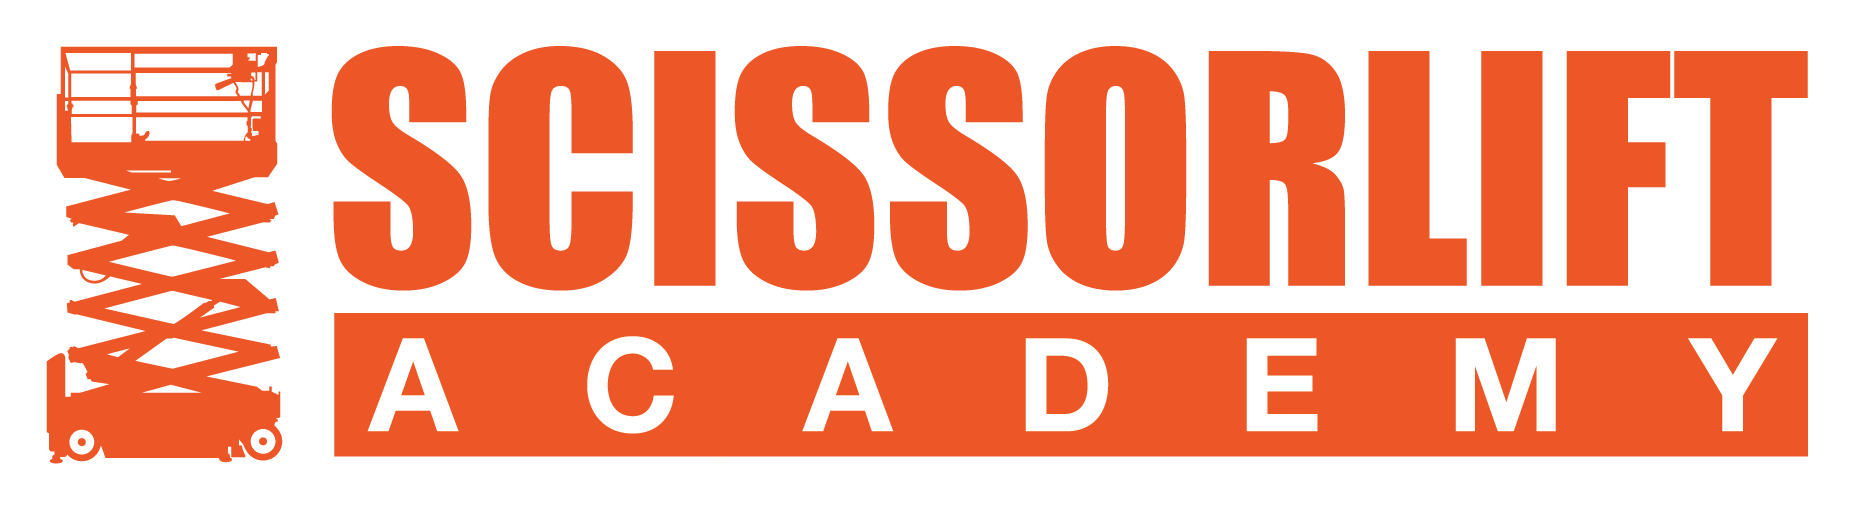 Scissor Lift Academy- #1 Scissor Lift Training & Certification